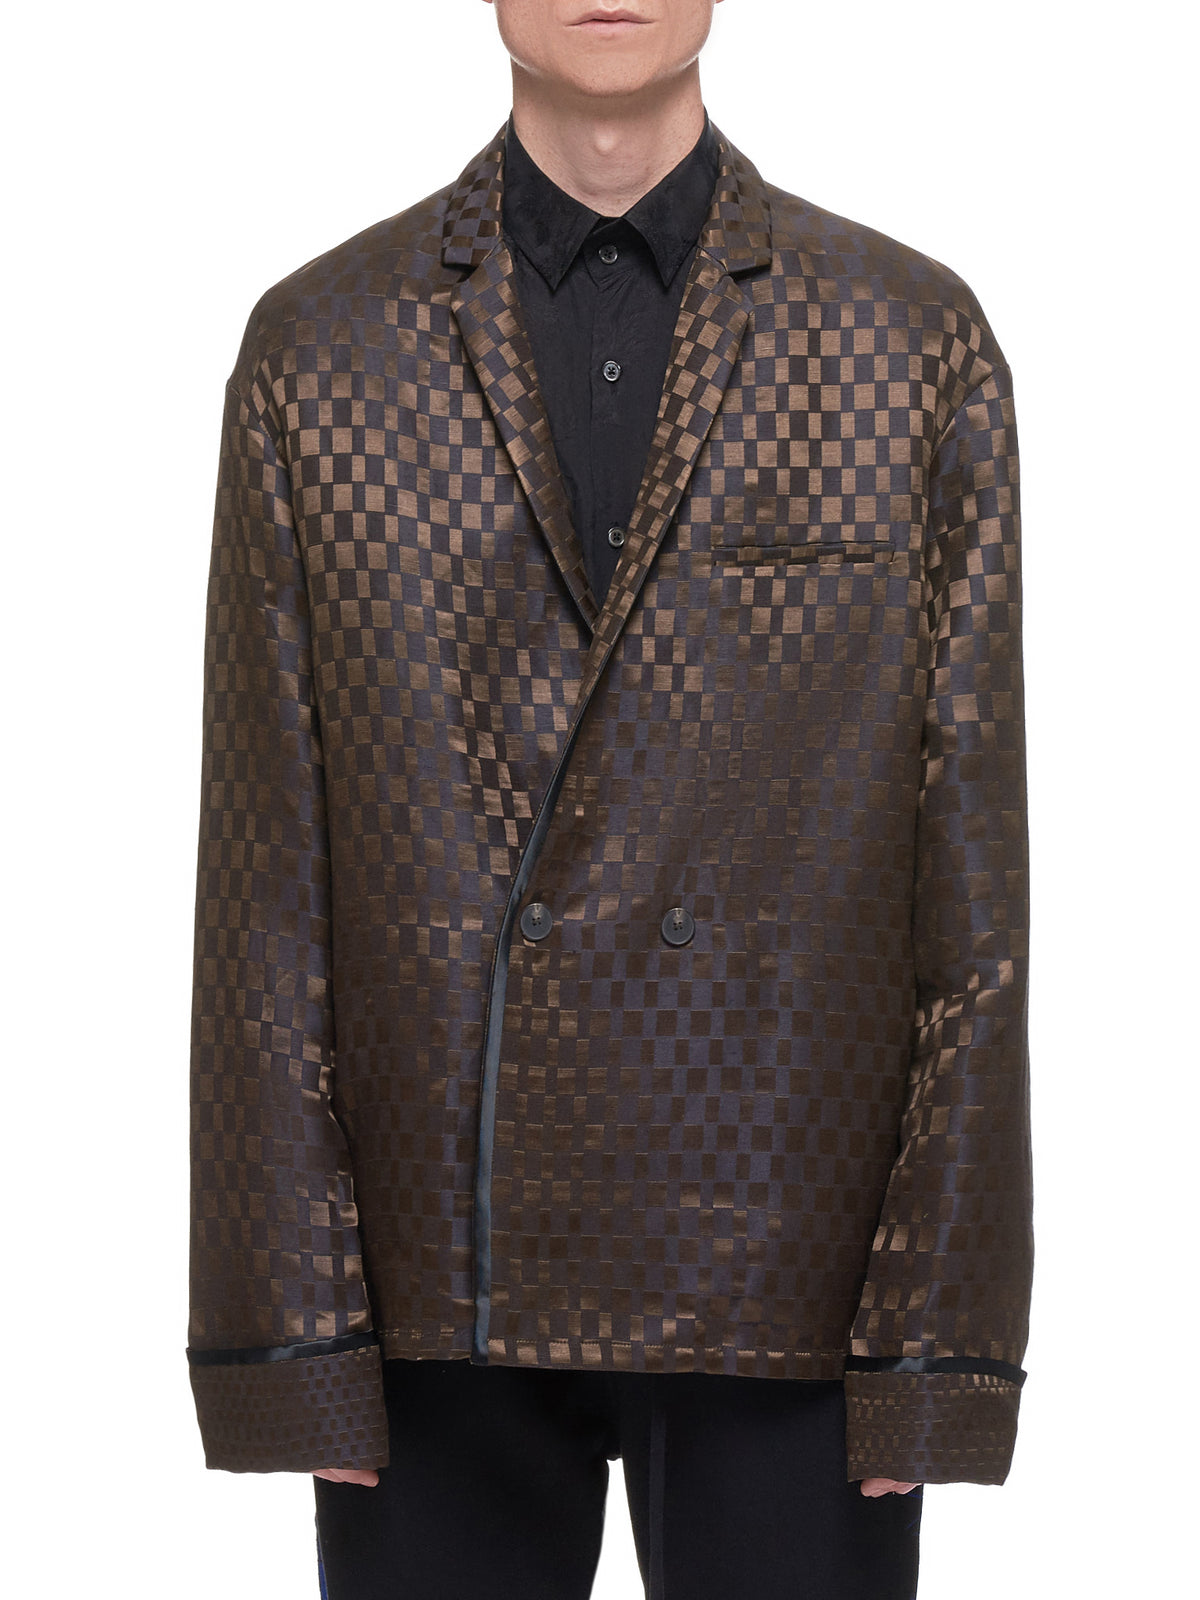 Pyjama Jacket (193-3008-140-027-BROWN)